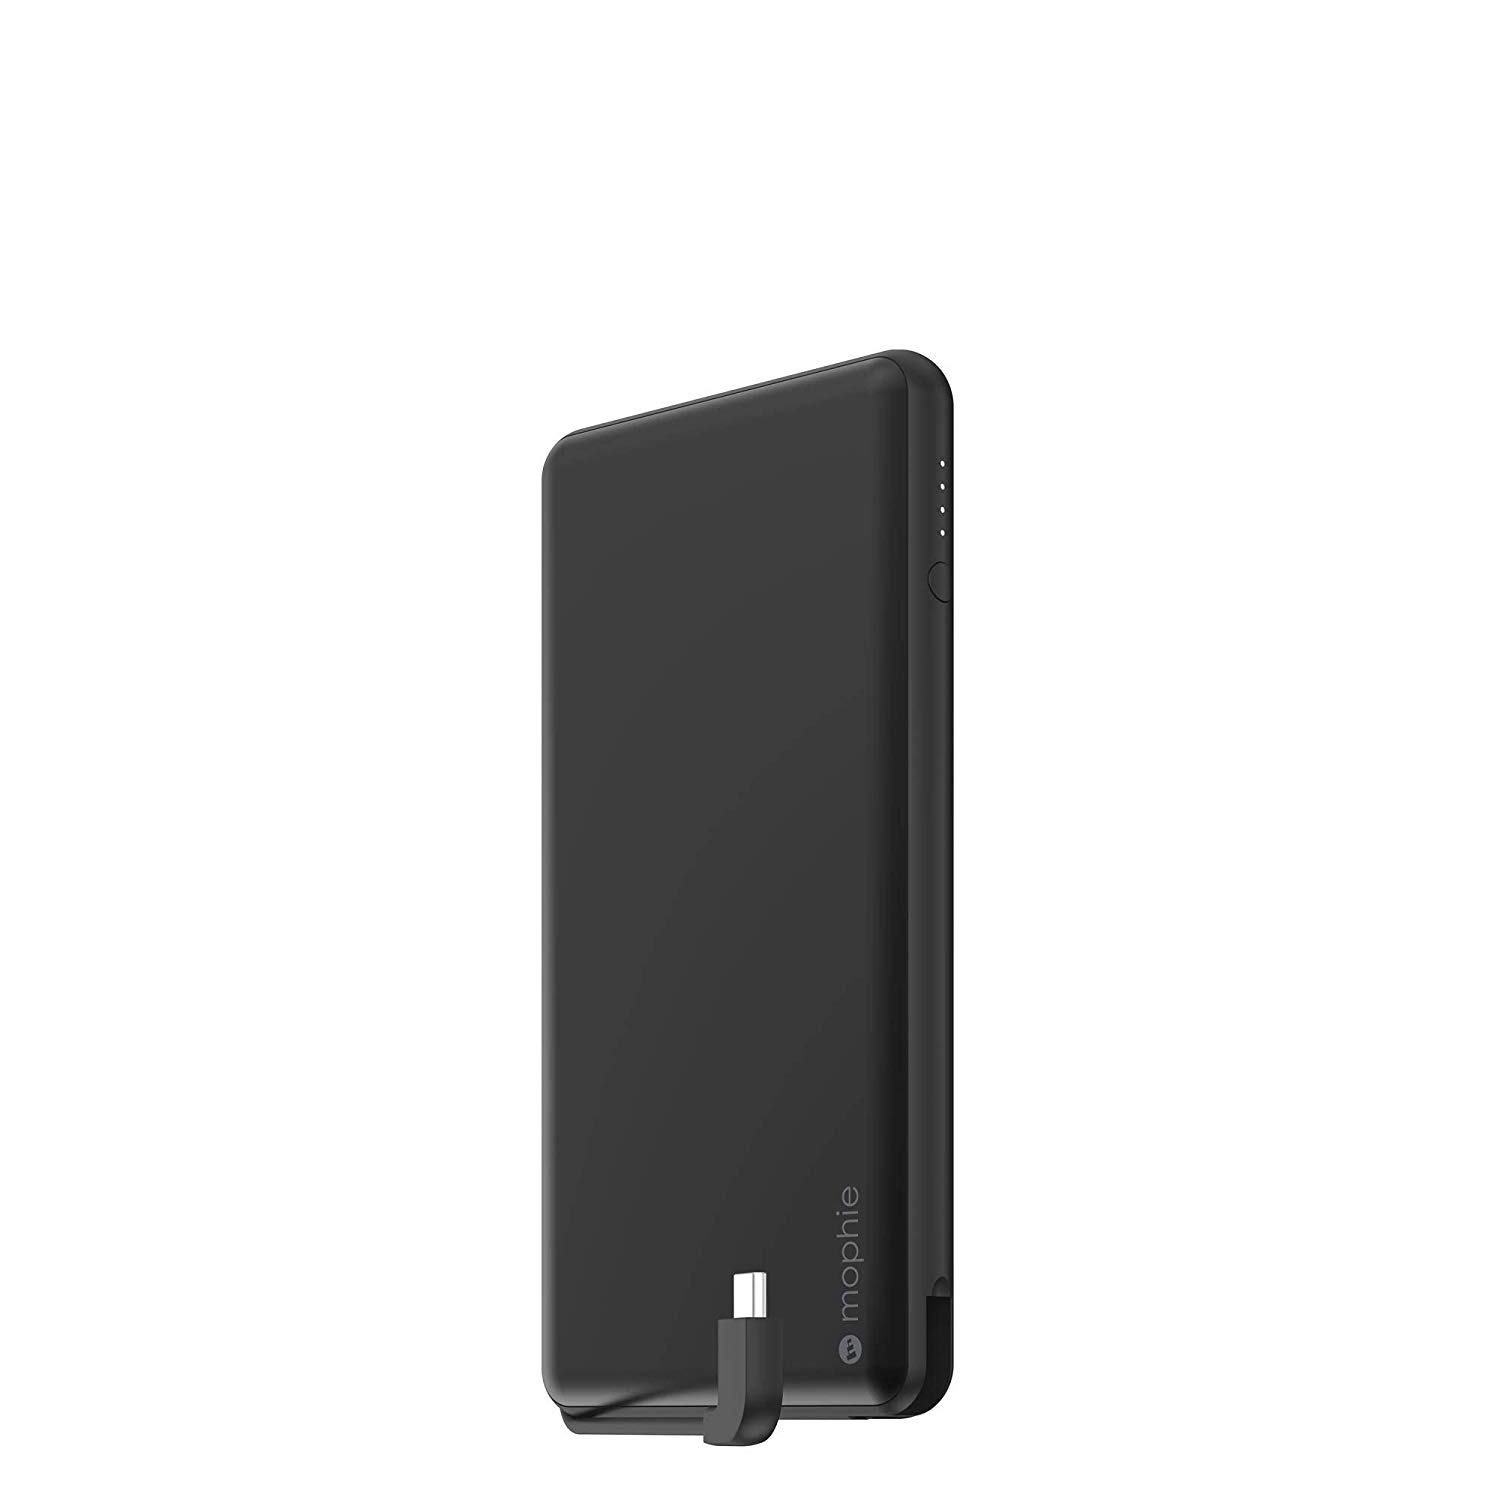 Mophie Powerstation External Battery Built In Usb C Cable Fast Charging Black Ebay Genuine mophie power reserve 1x portable mini usb smartphone powerbank charger. ebay